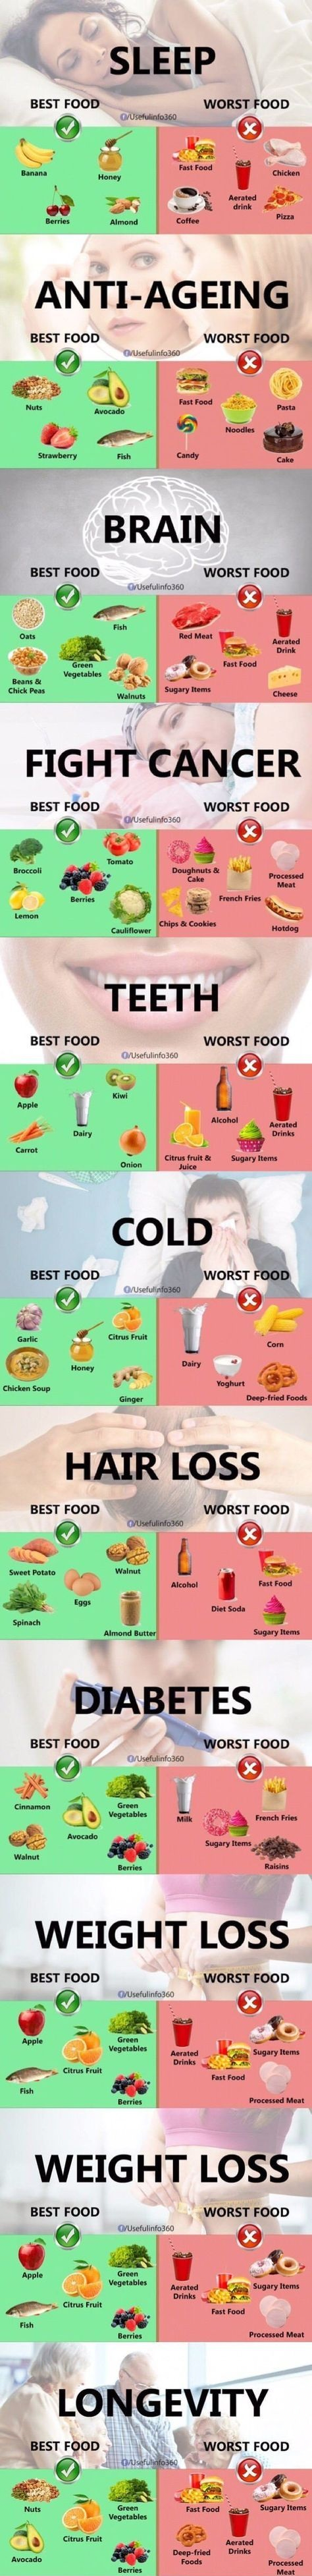 Best and worst foods in different situation